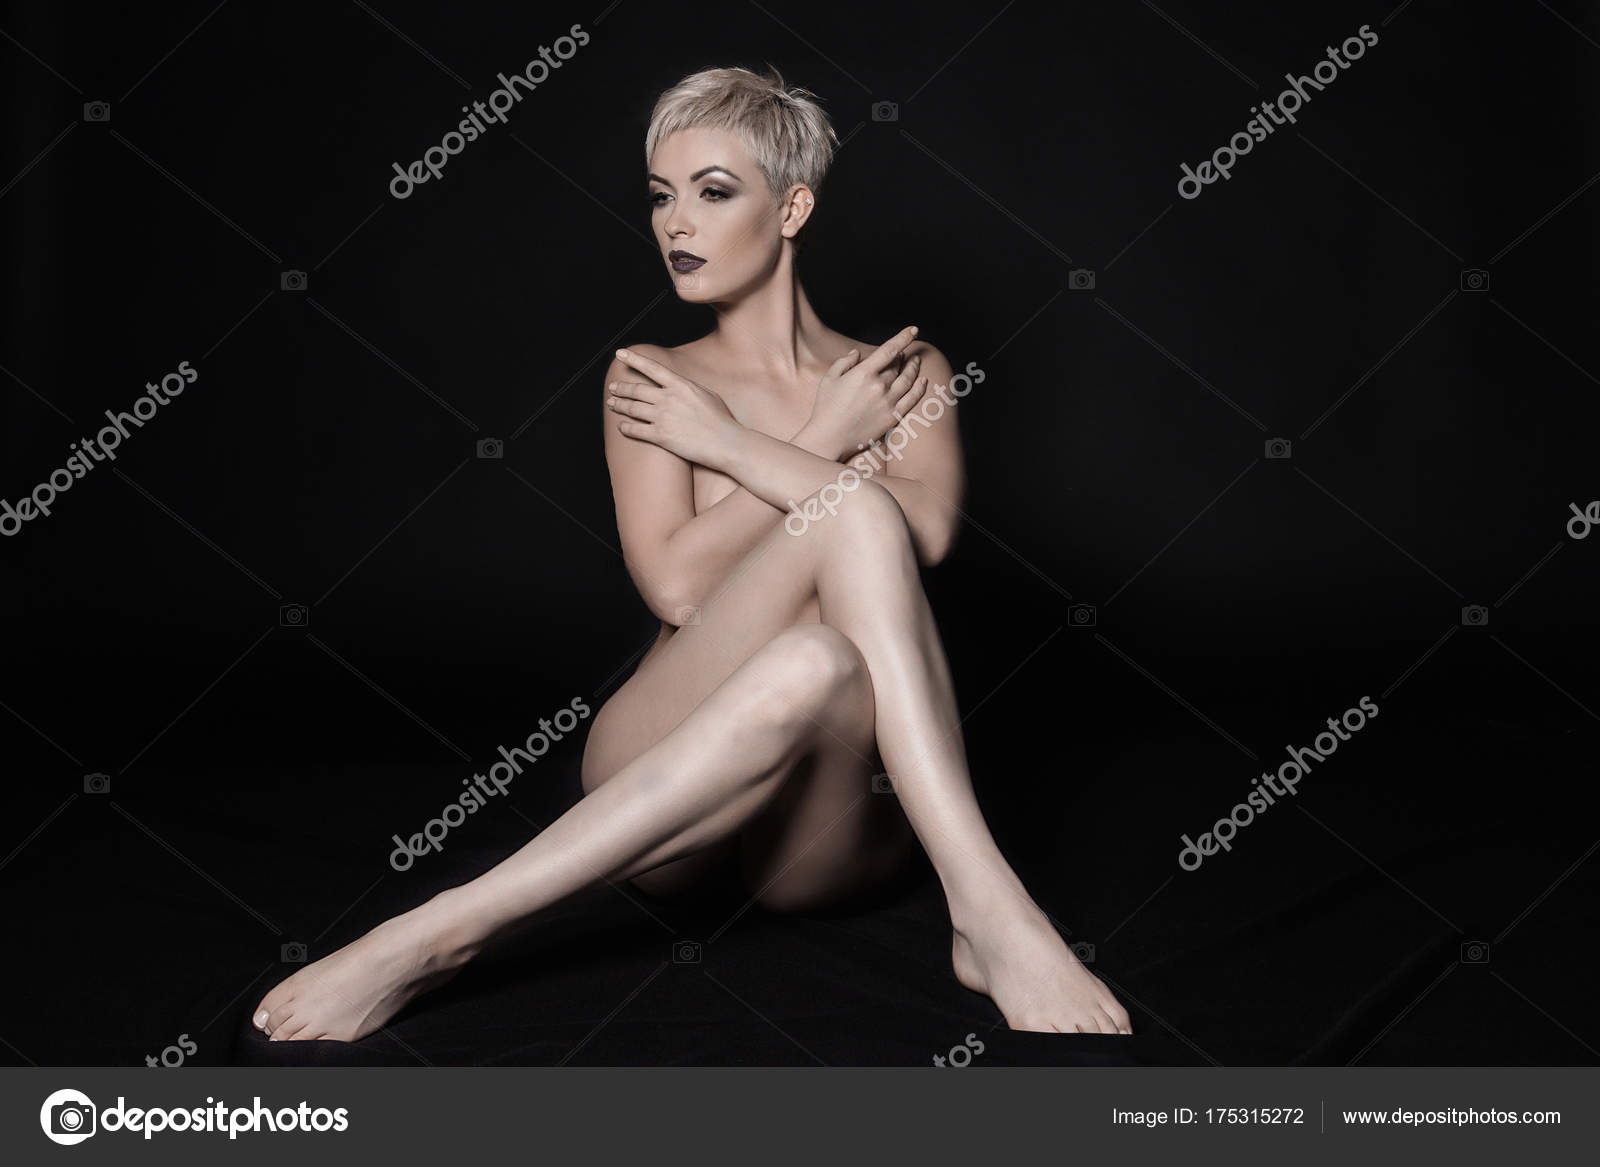 Beautiful nude woman with long legs– stock image